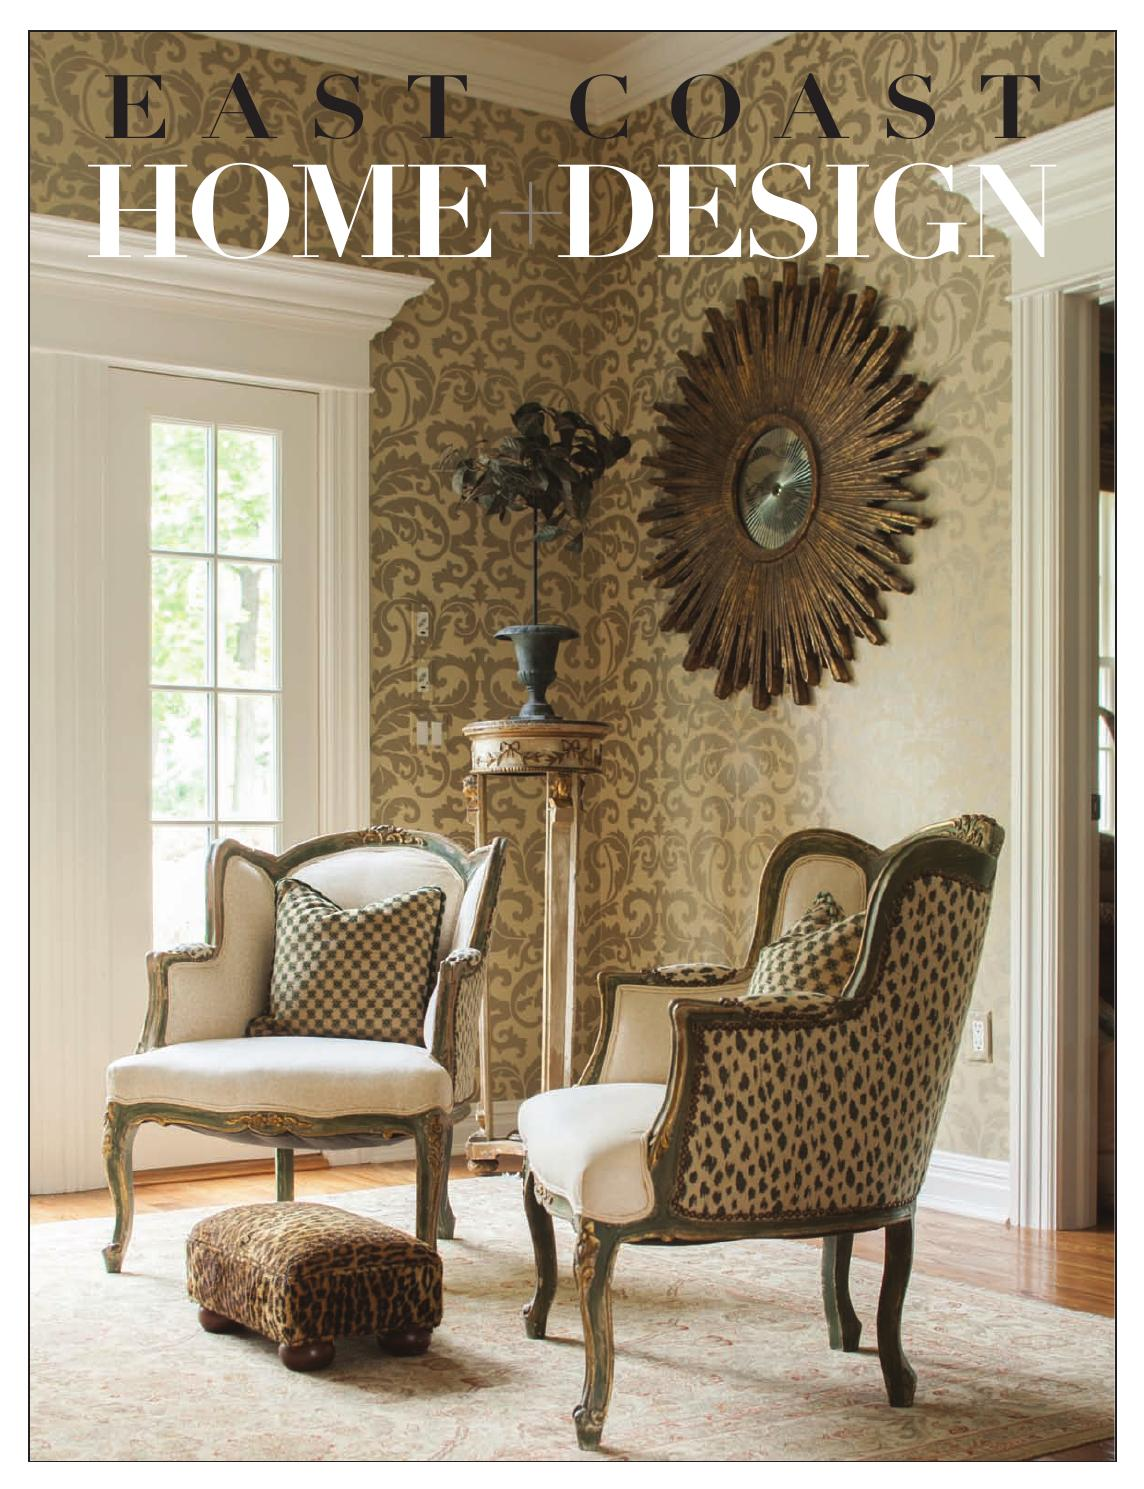 East Coast Home Design January 2014 By Publishing